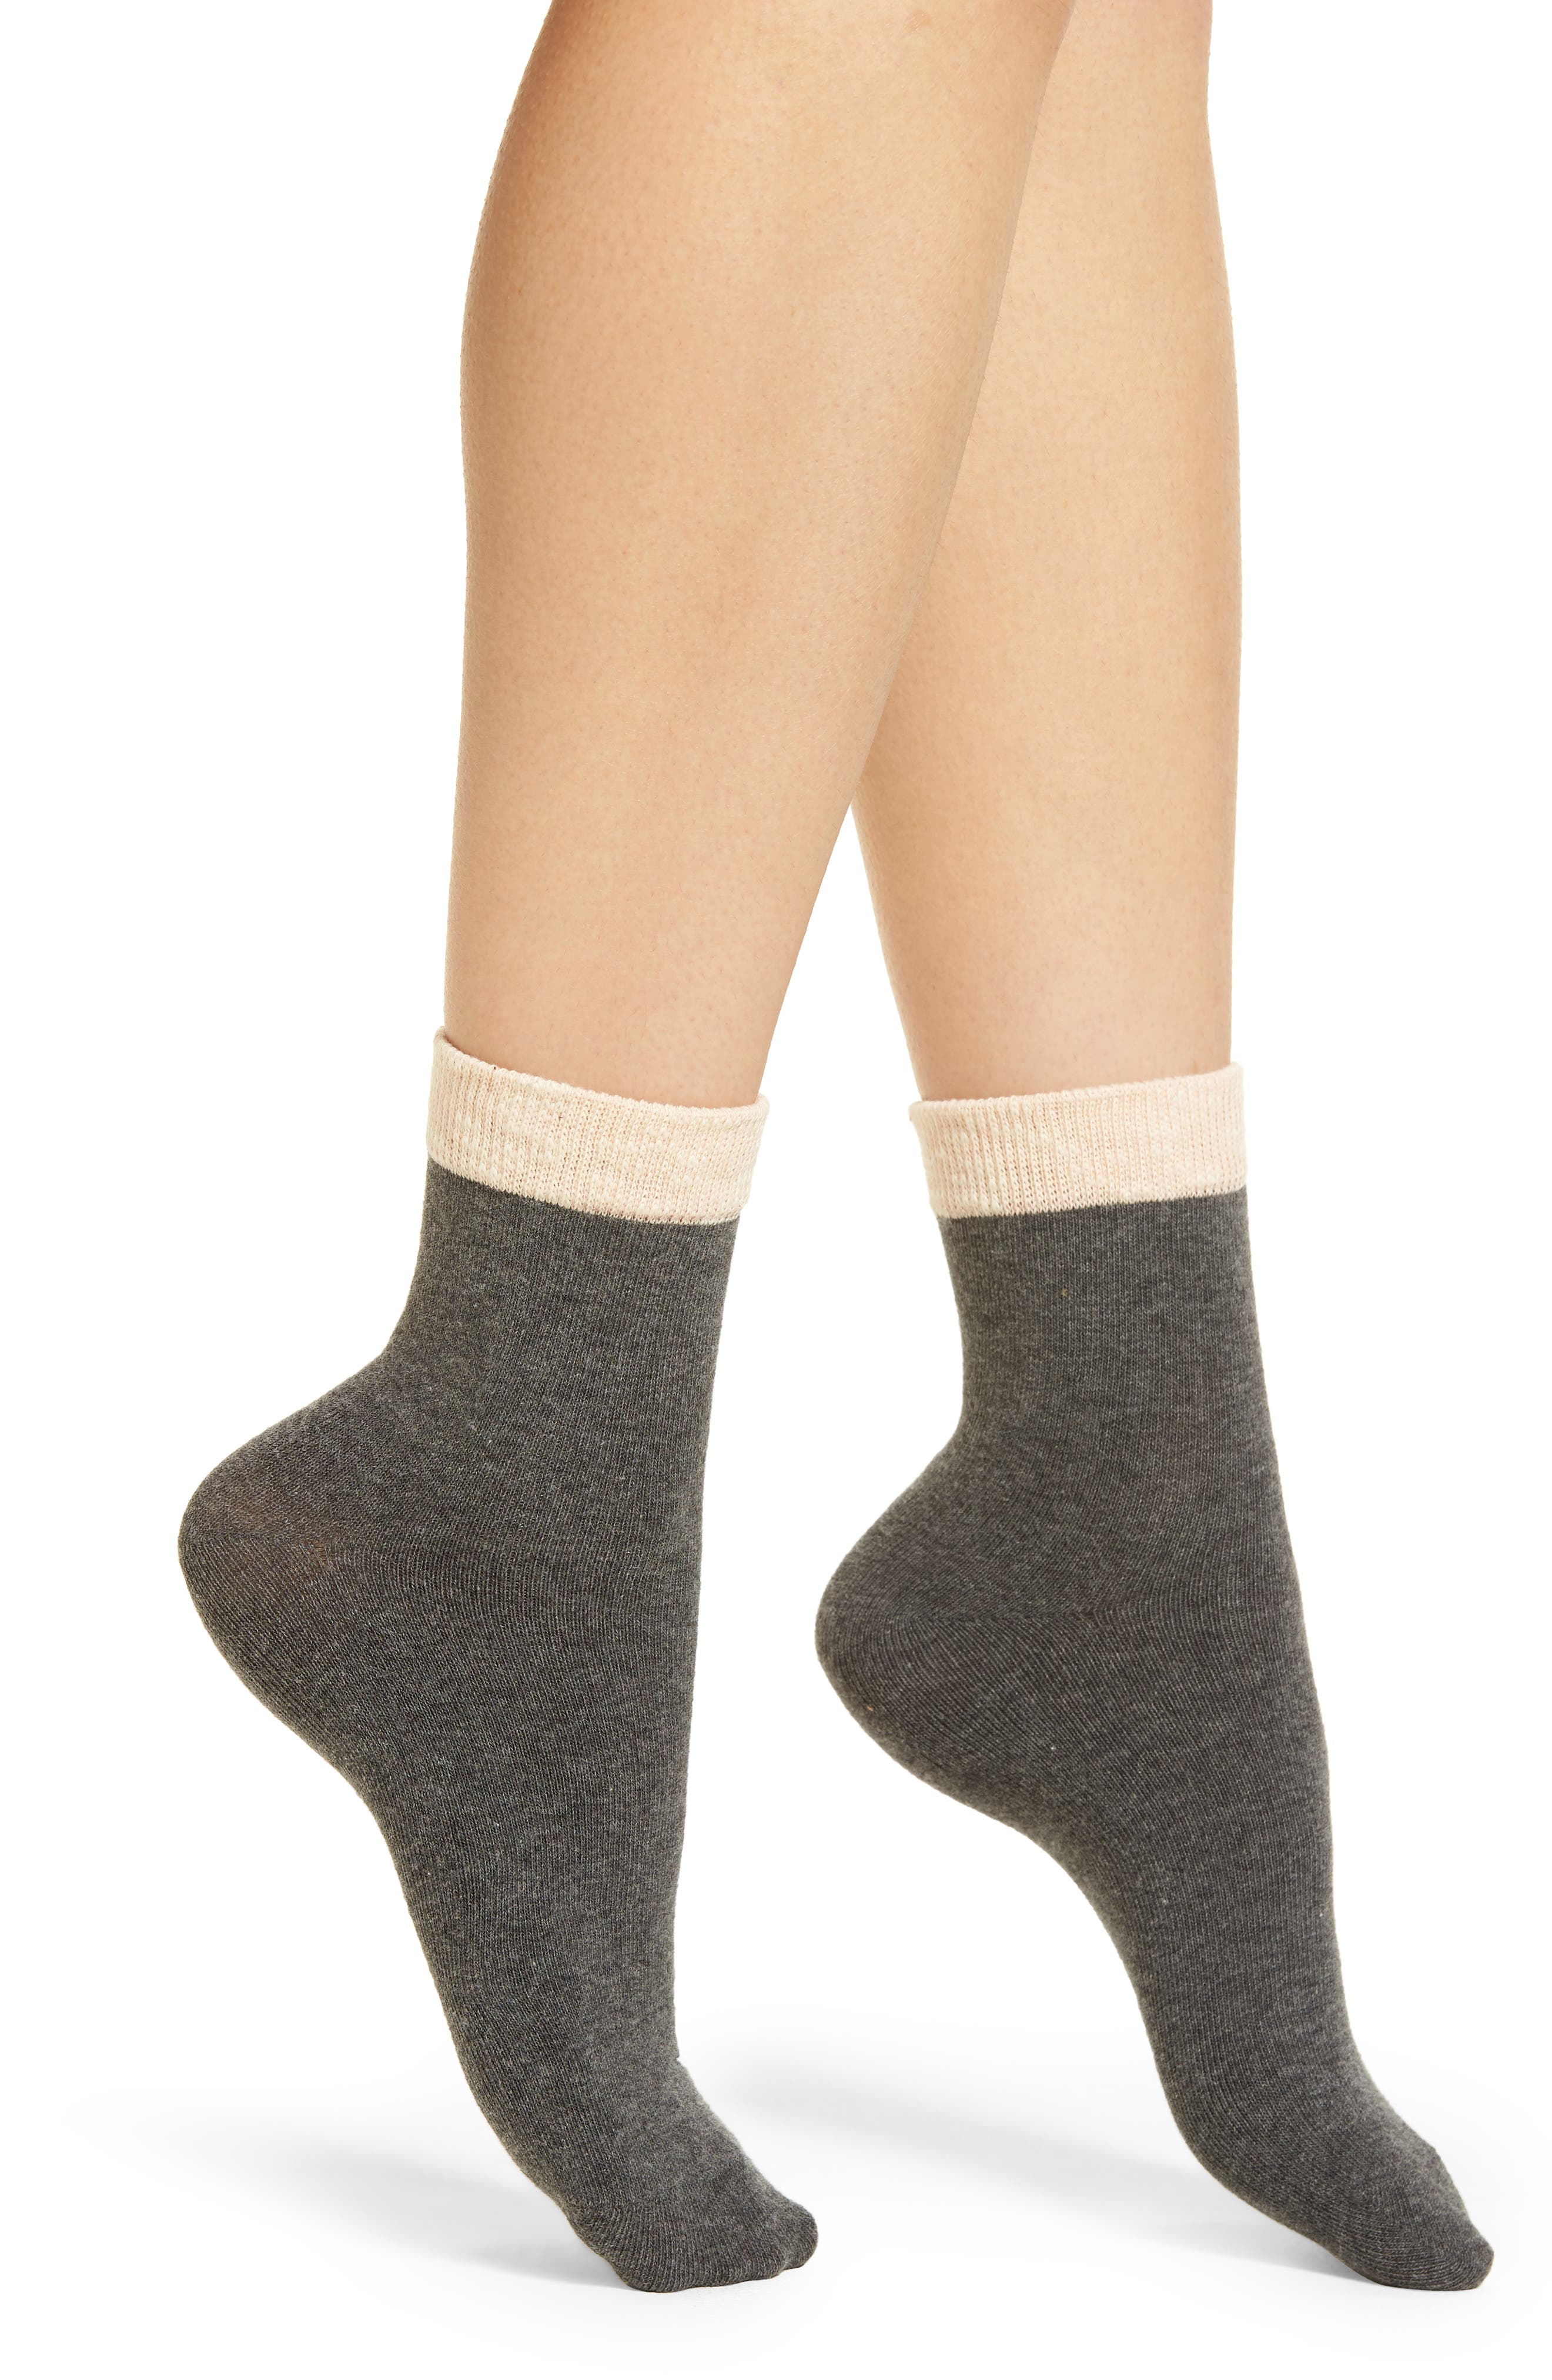 Ivy Ankle Socks,                         Main,                         color, Charcoal